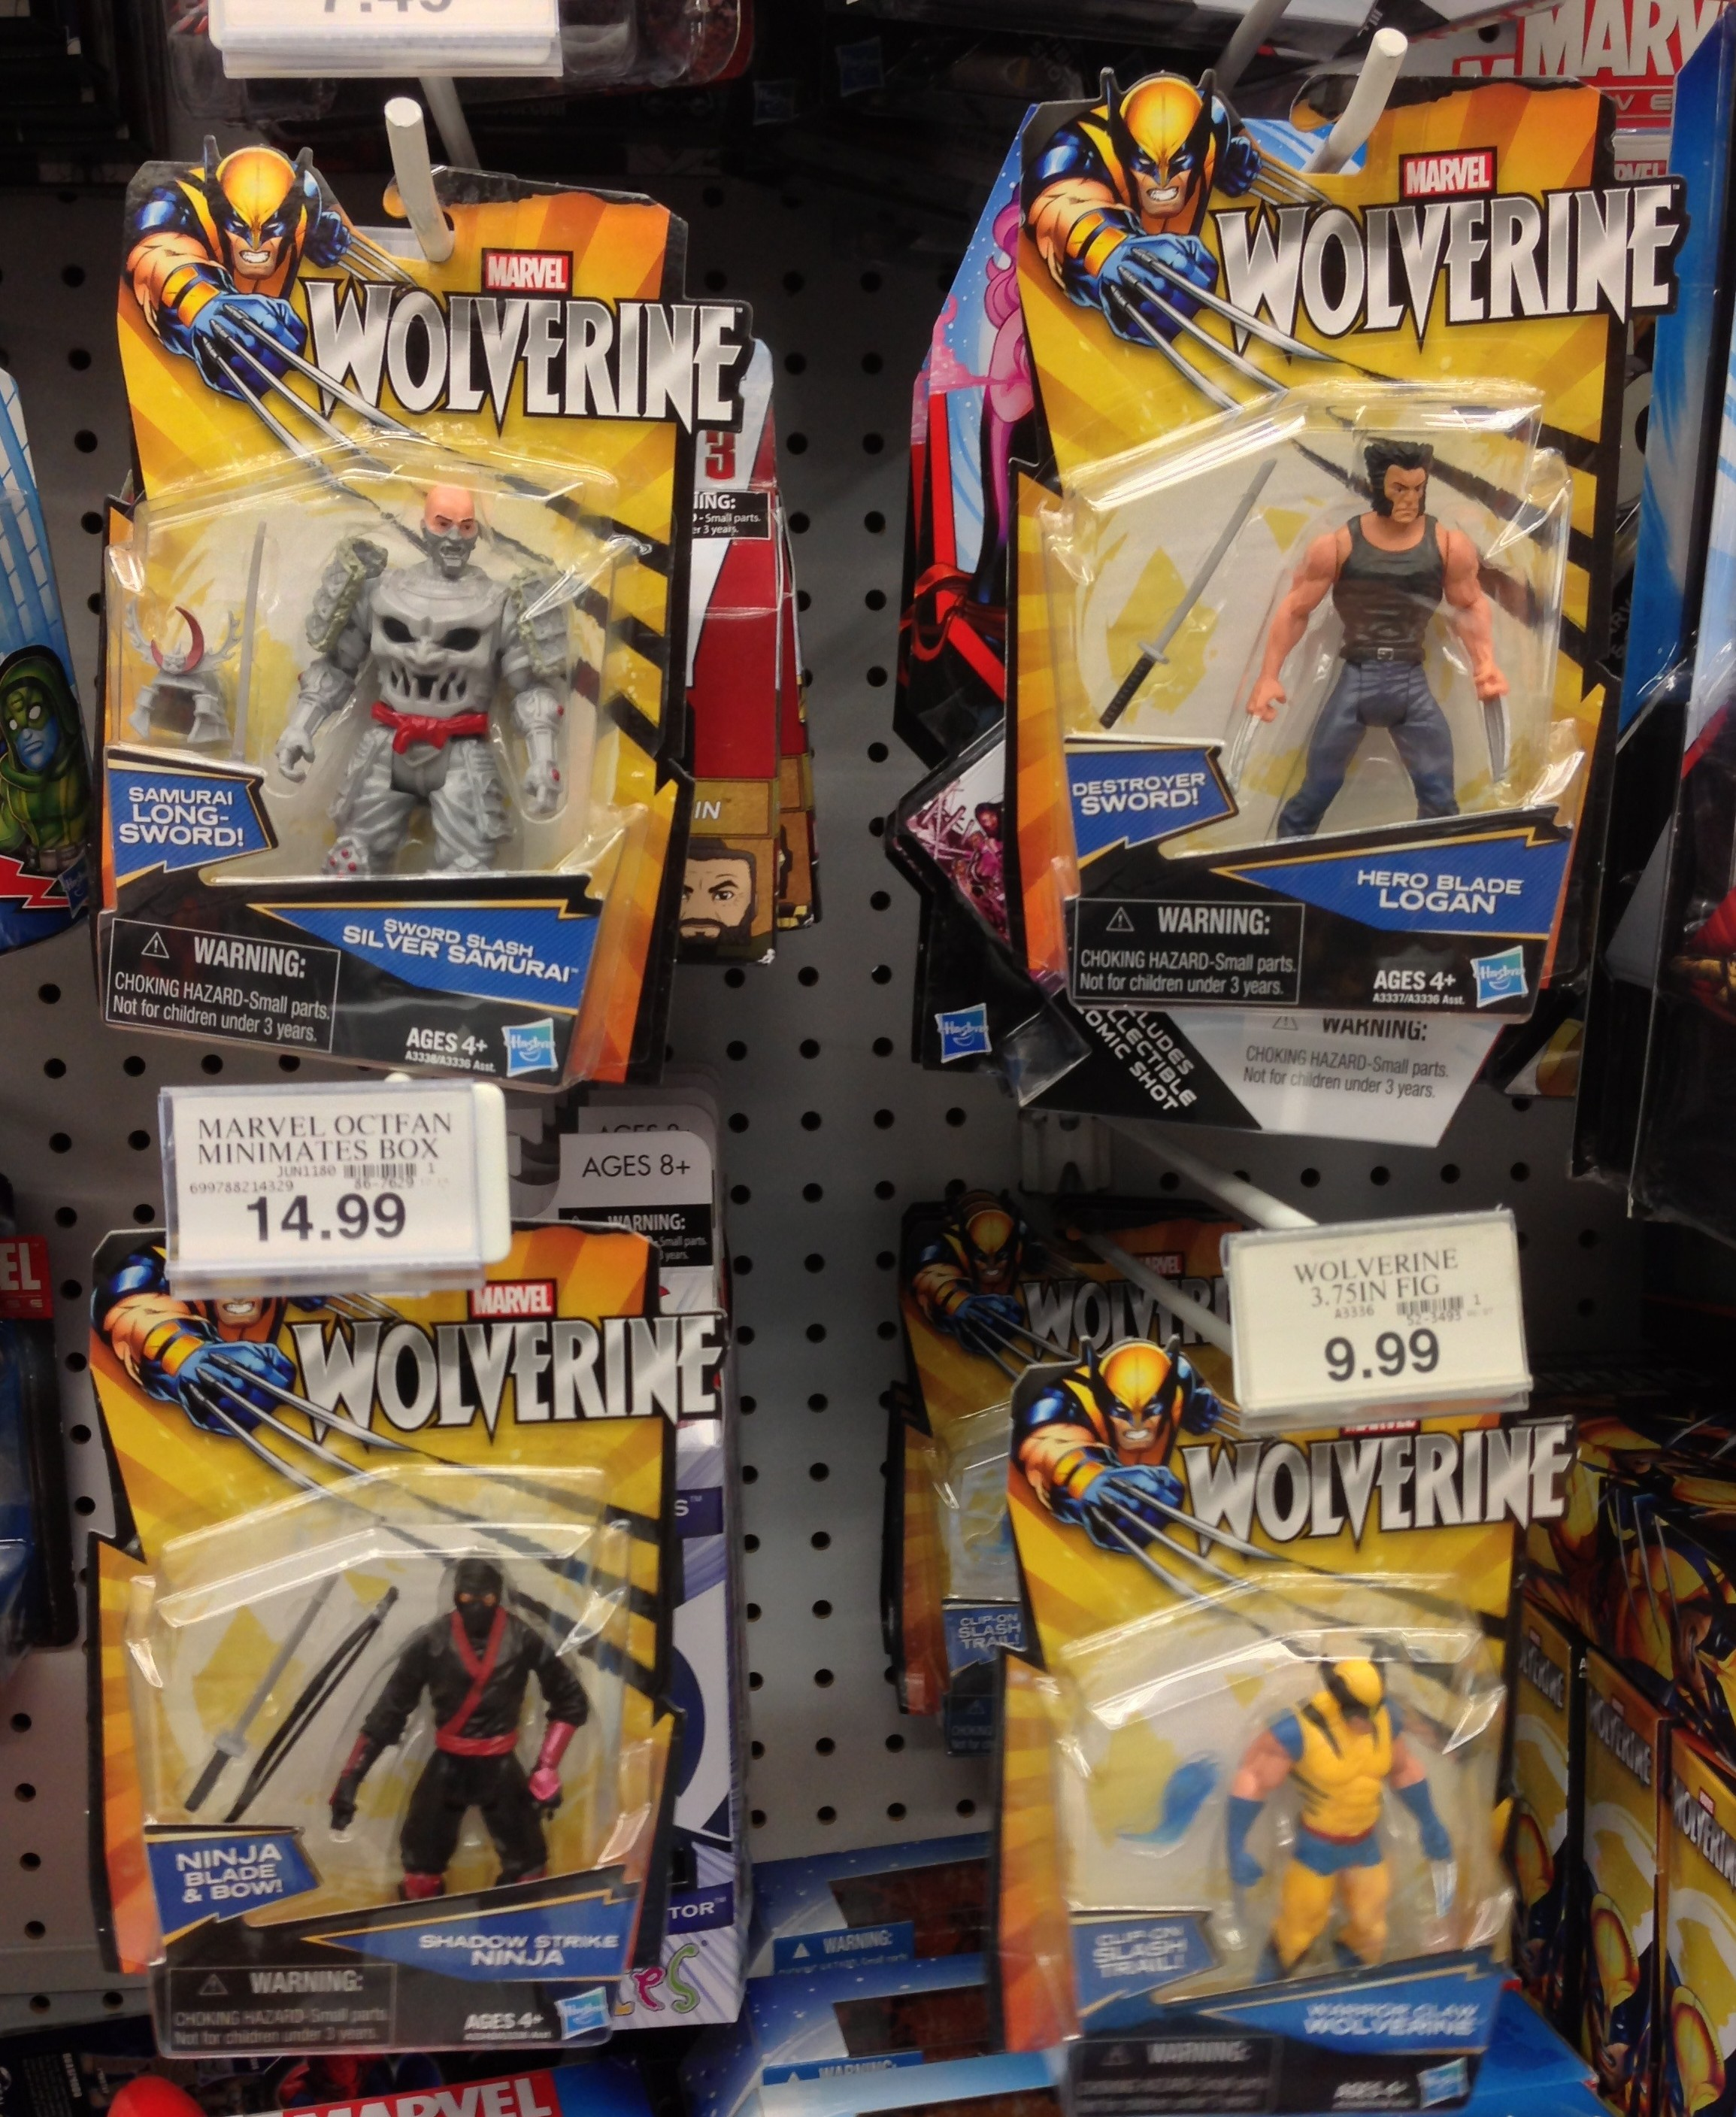 Wolverine Movie Action Figures Released By Hasbro Marvel Toy News